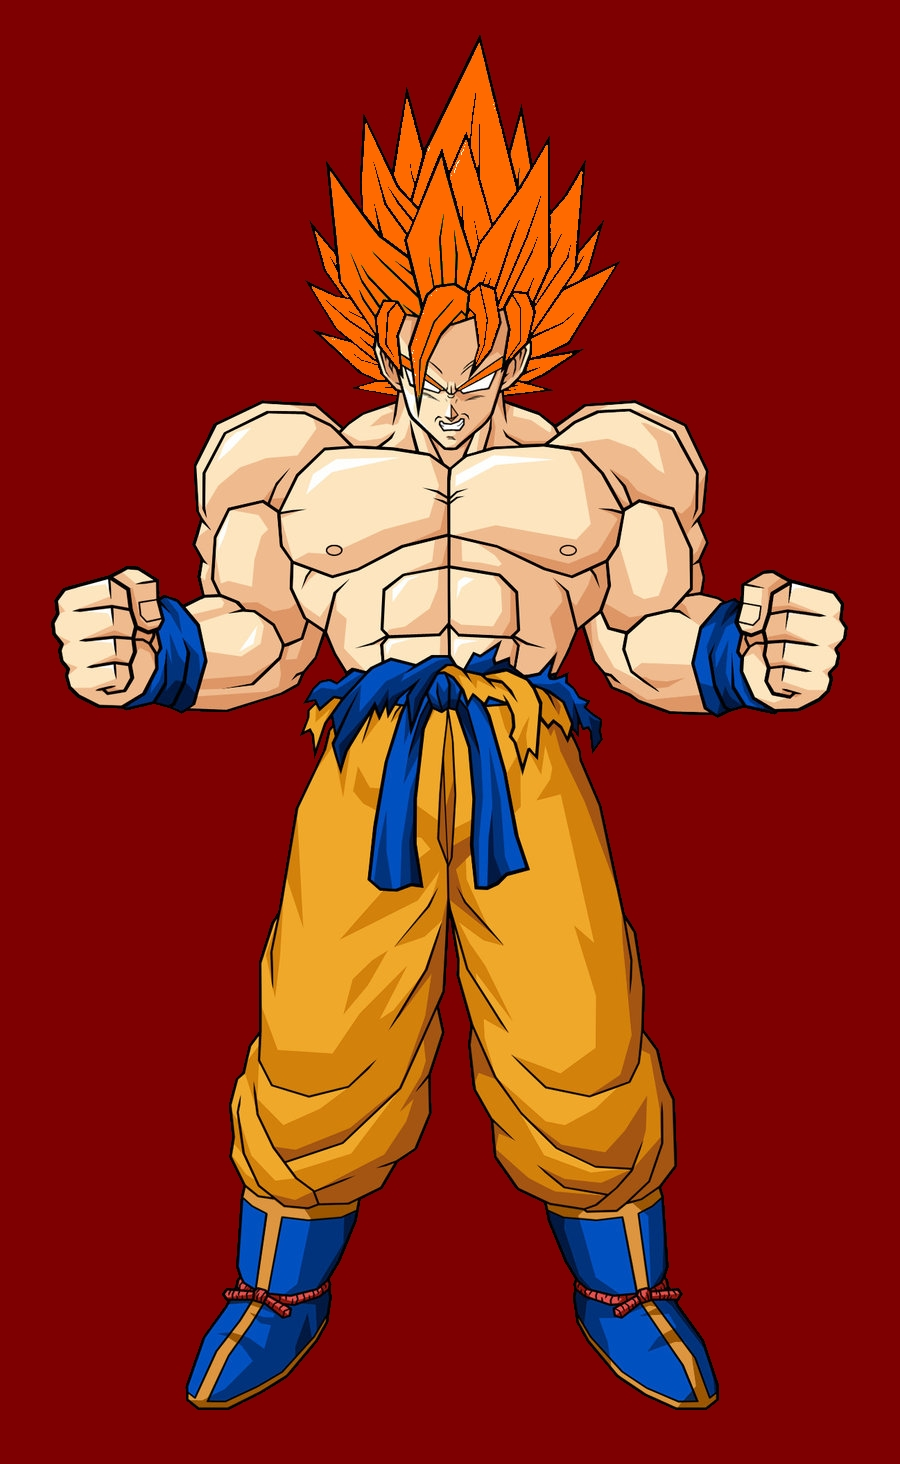 Super saiyan beyond limits ultra dragon ball wiki - Goku 5 super saiyan ...